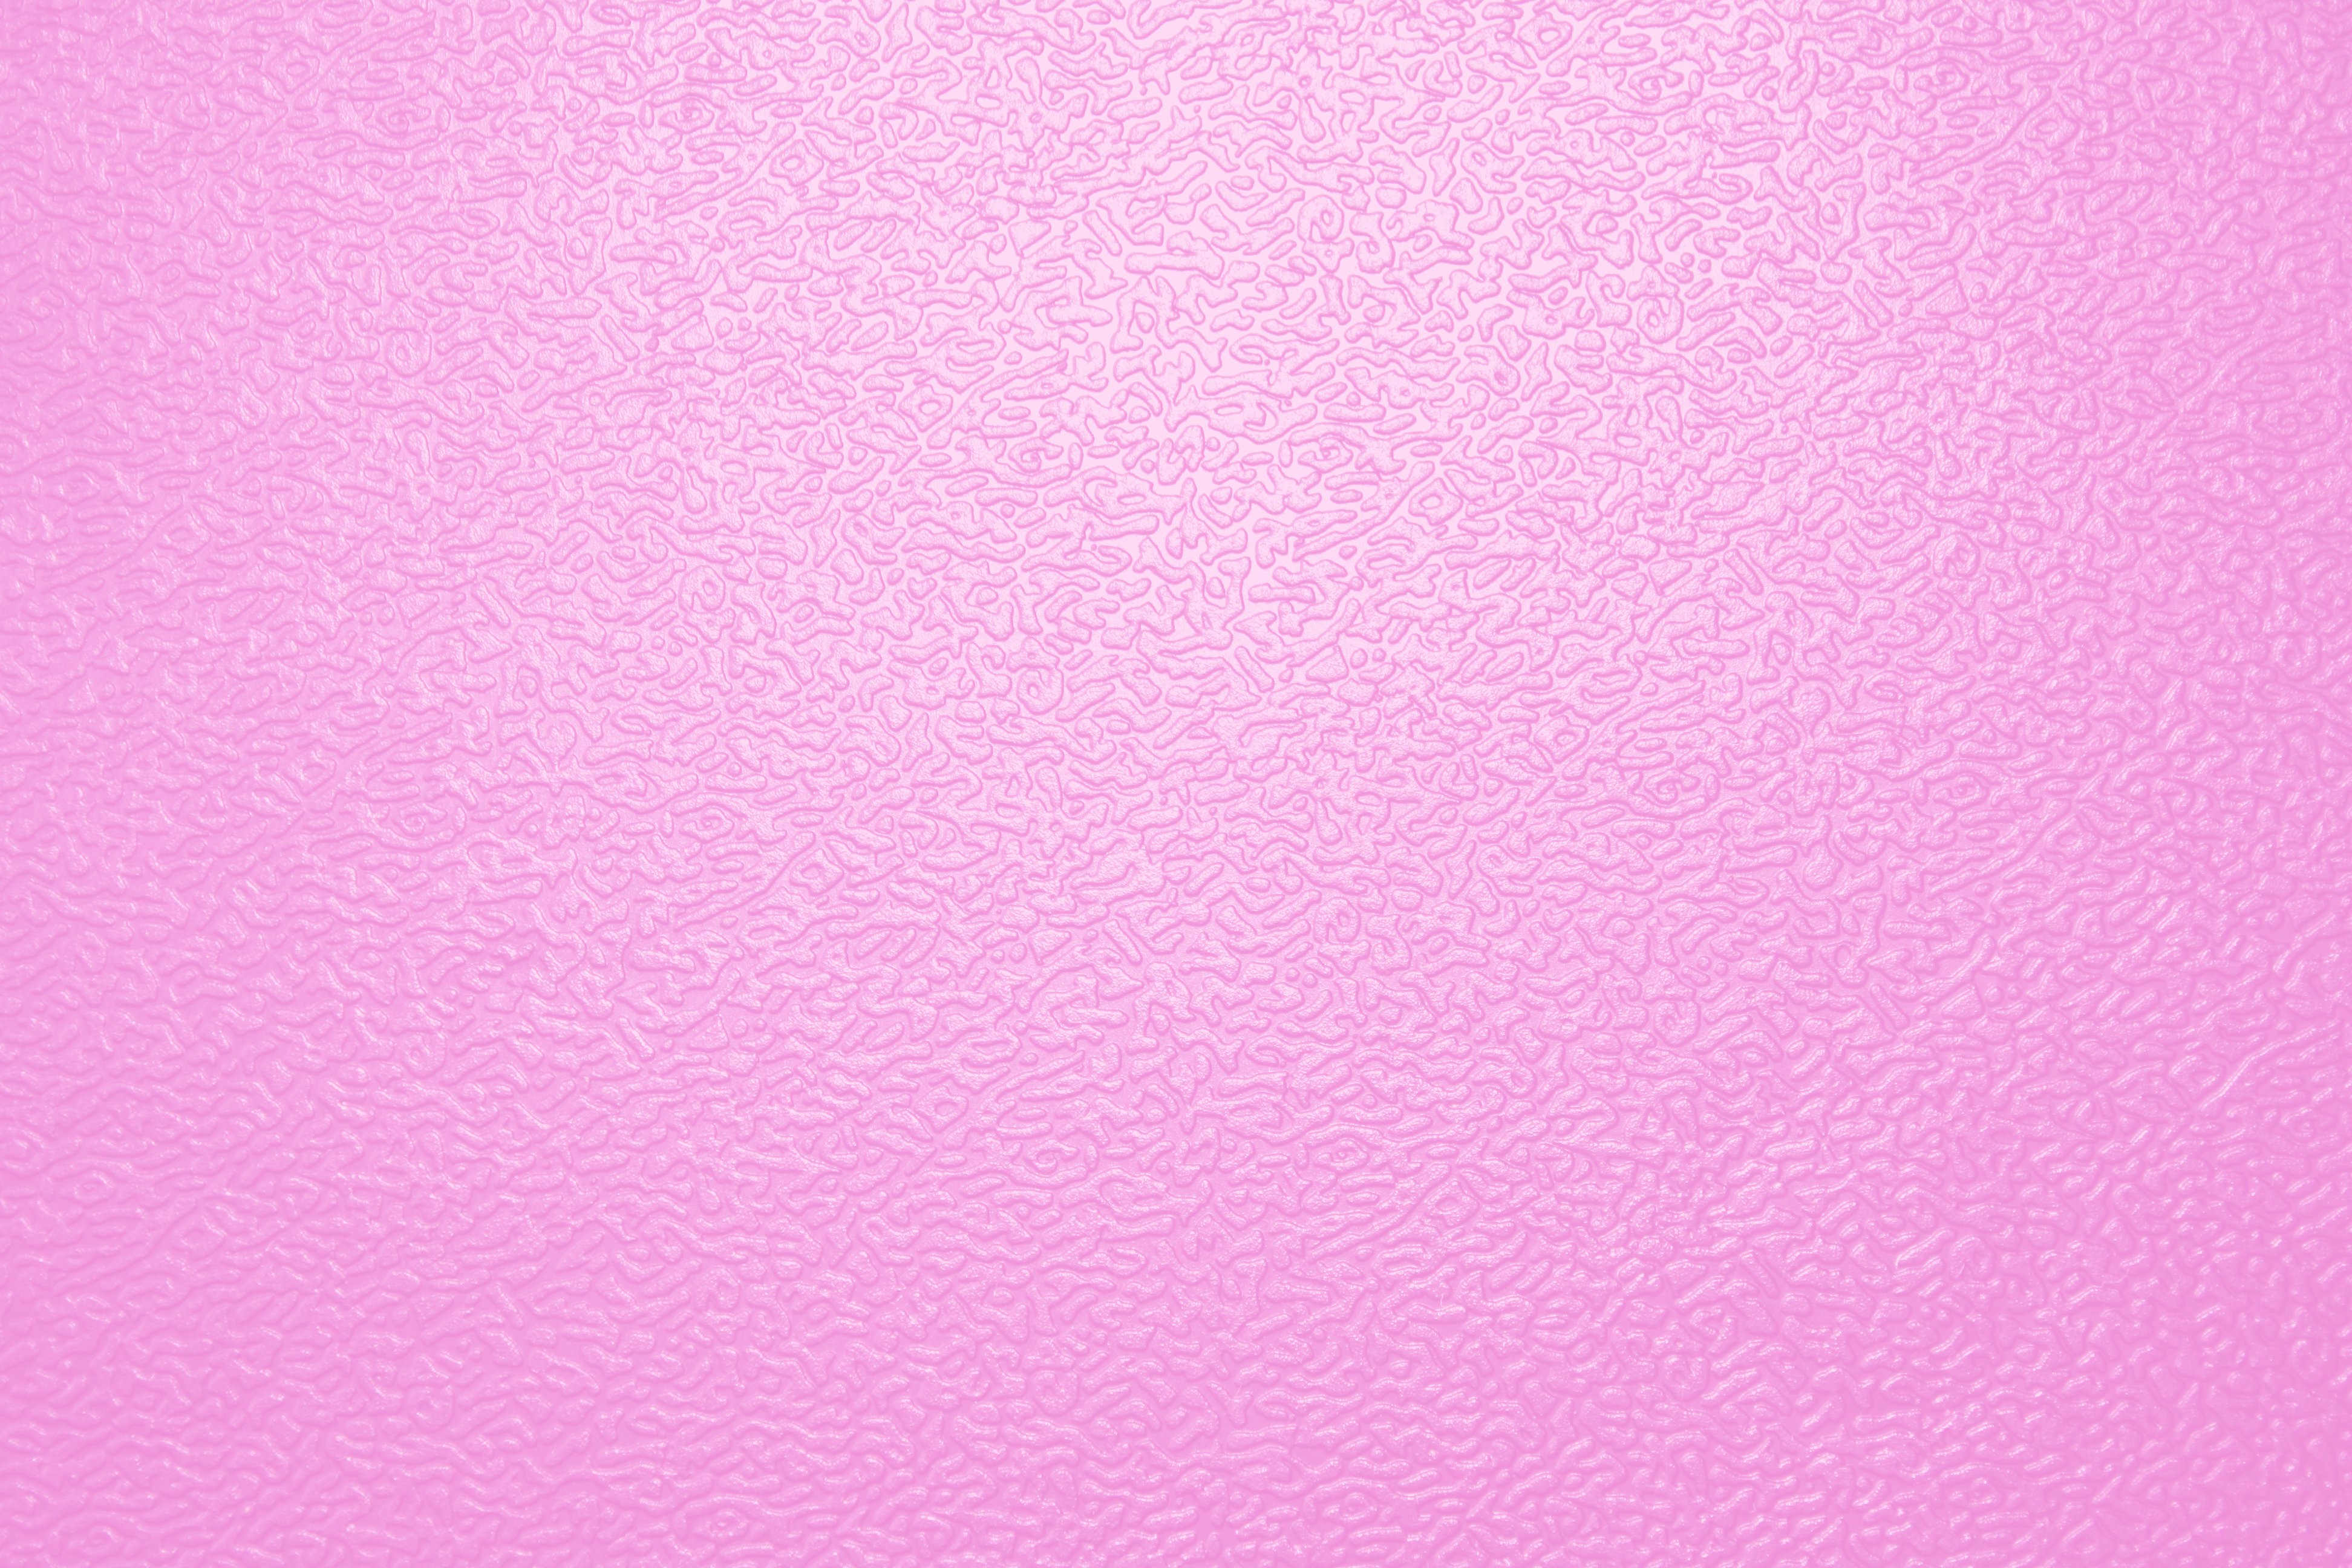 Textured Pink Plastic Close Up